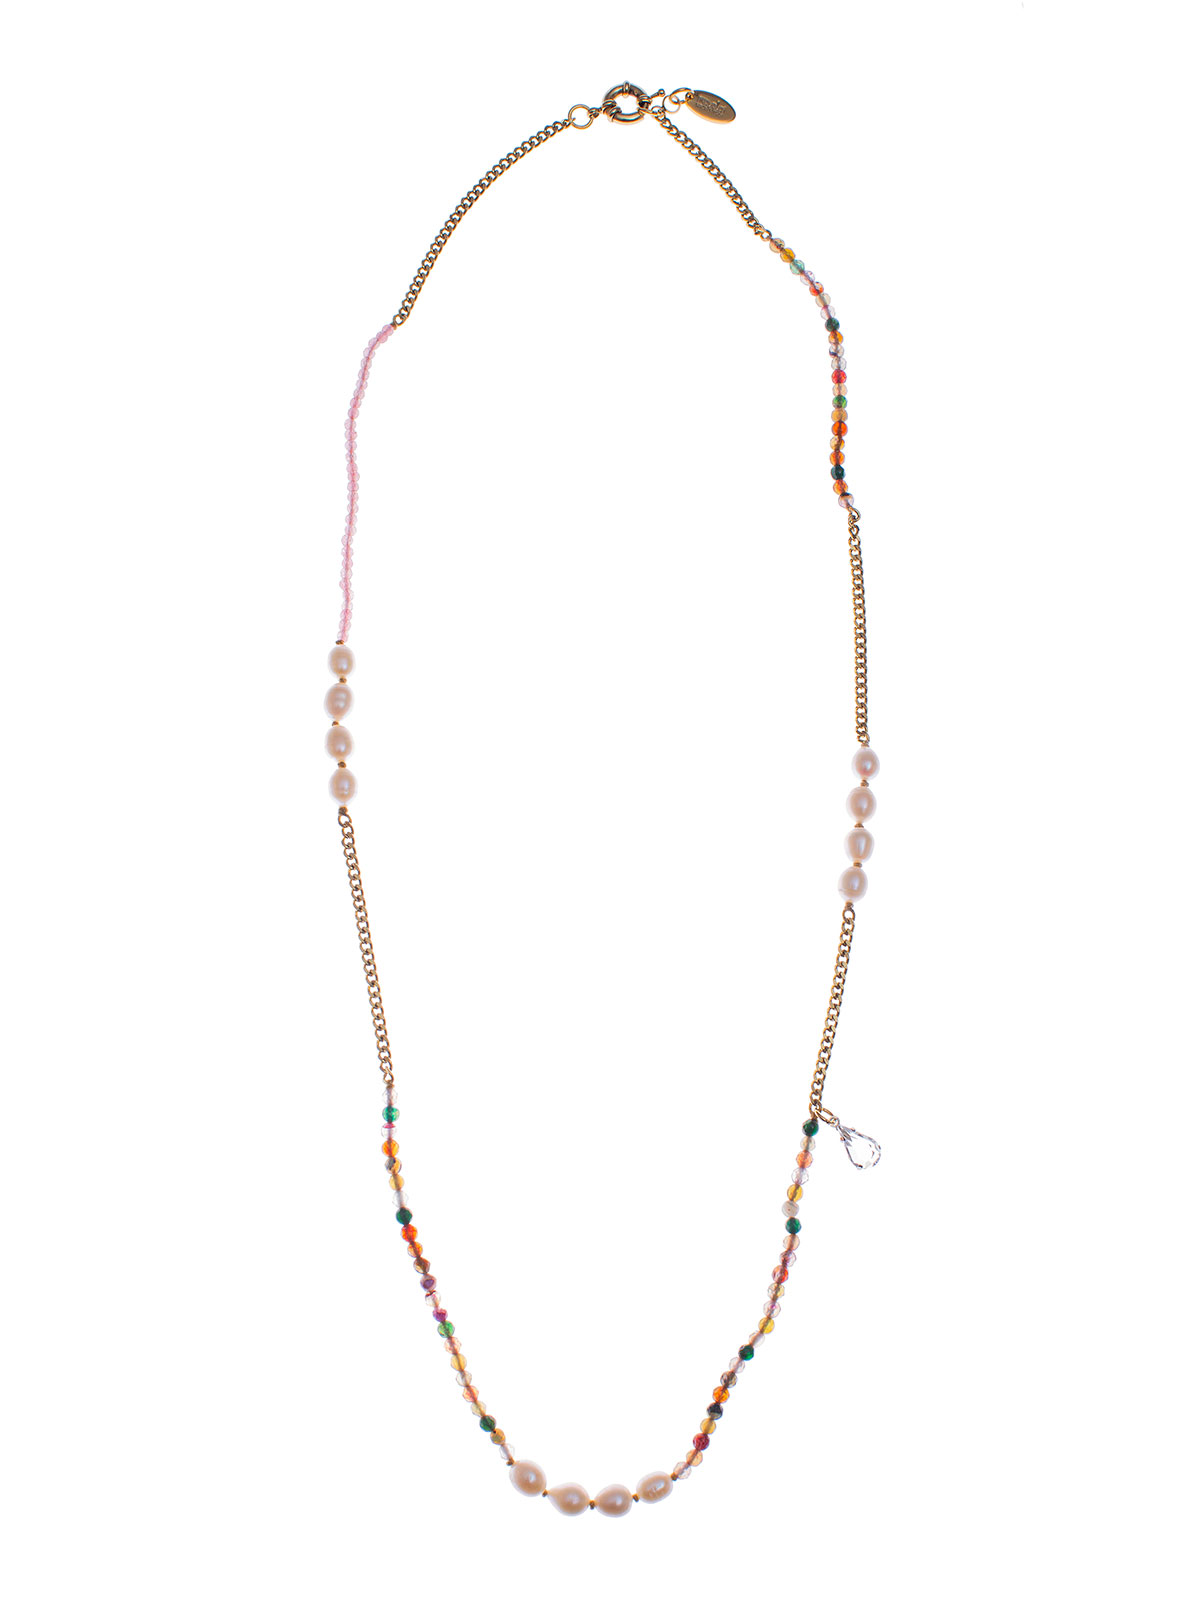 Jade beaded necklace and freshwater pearls